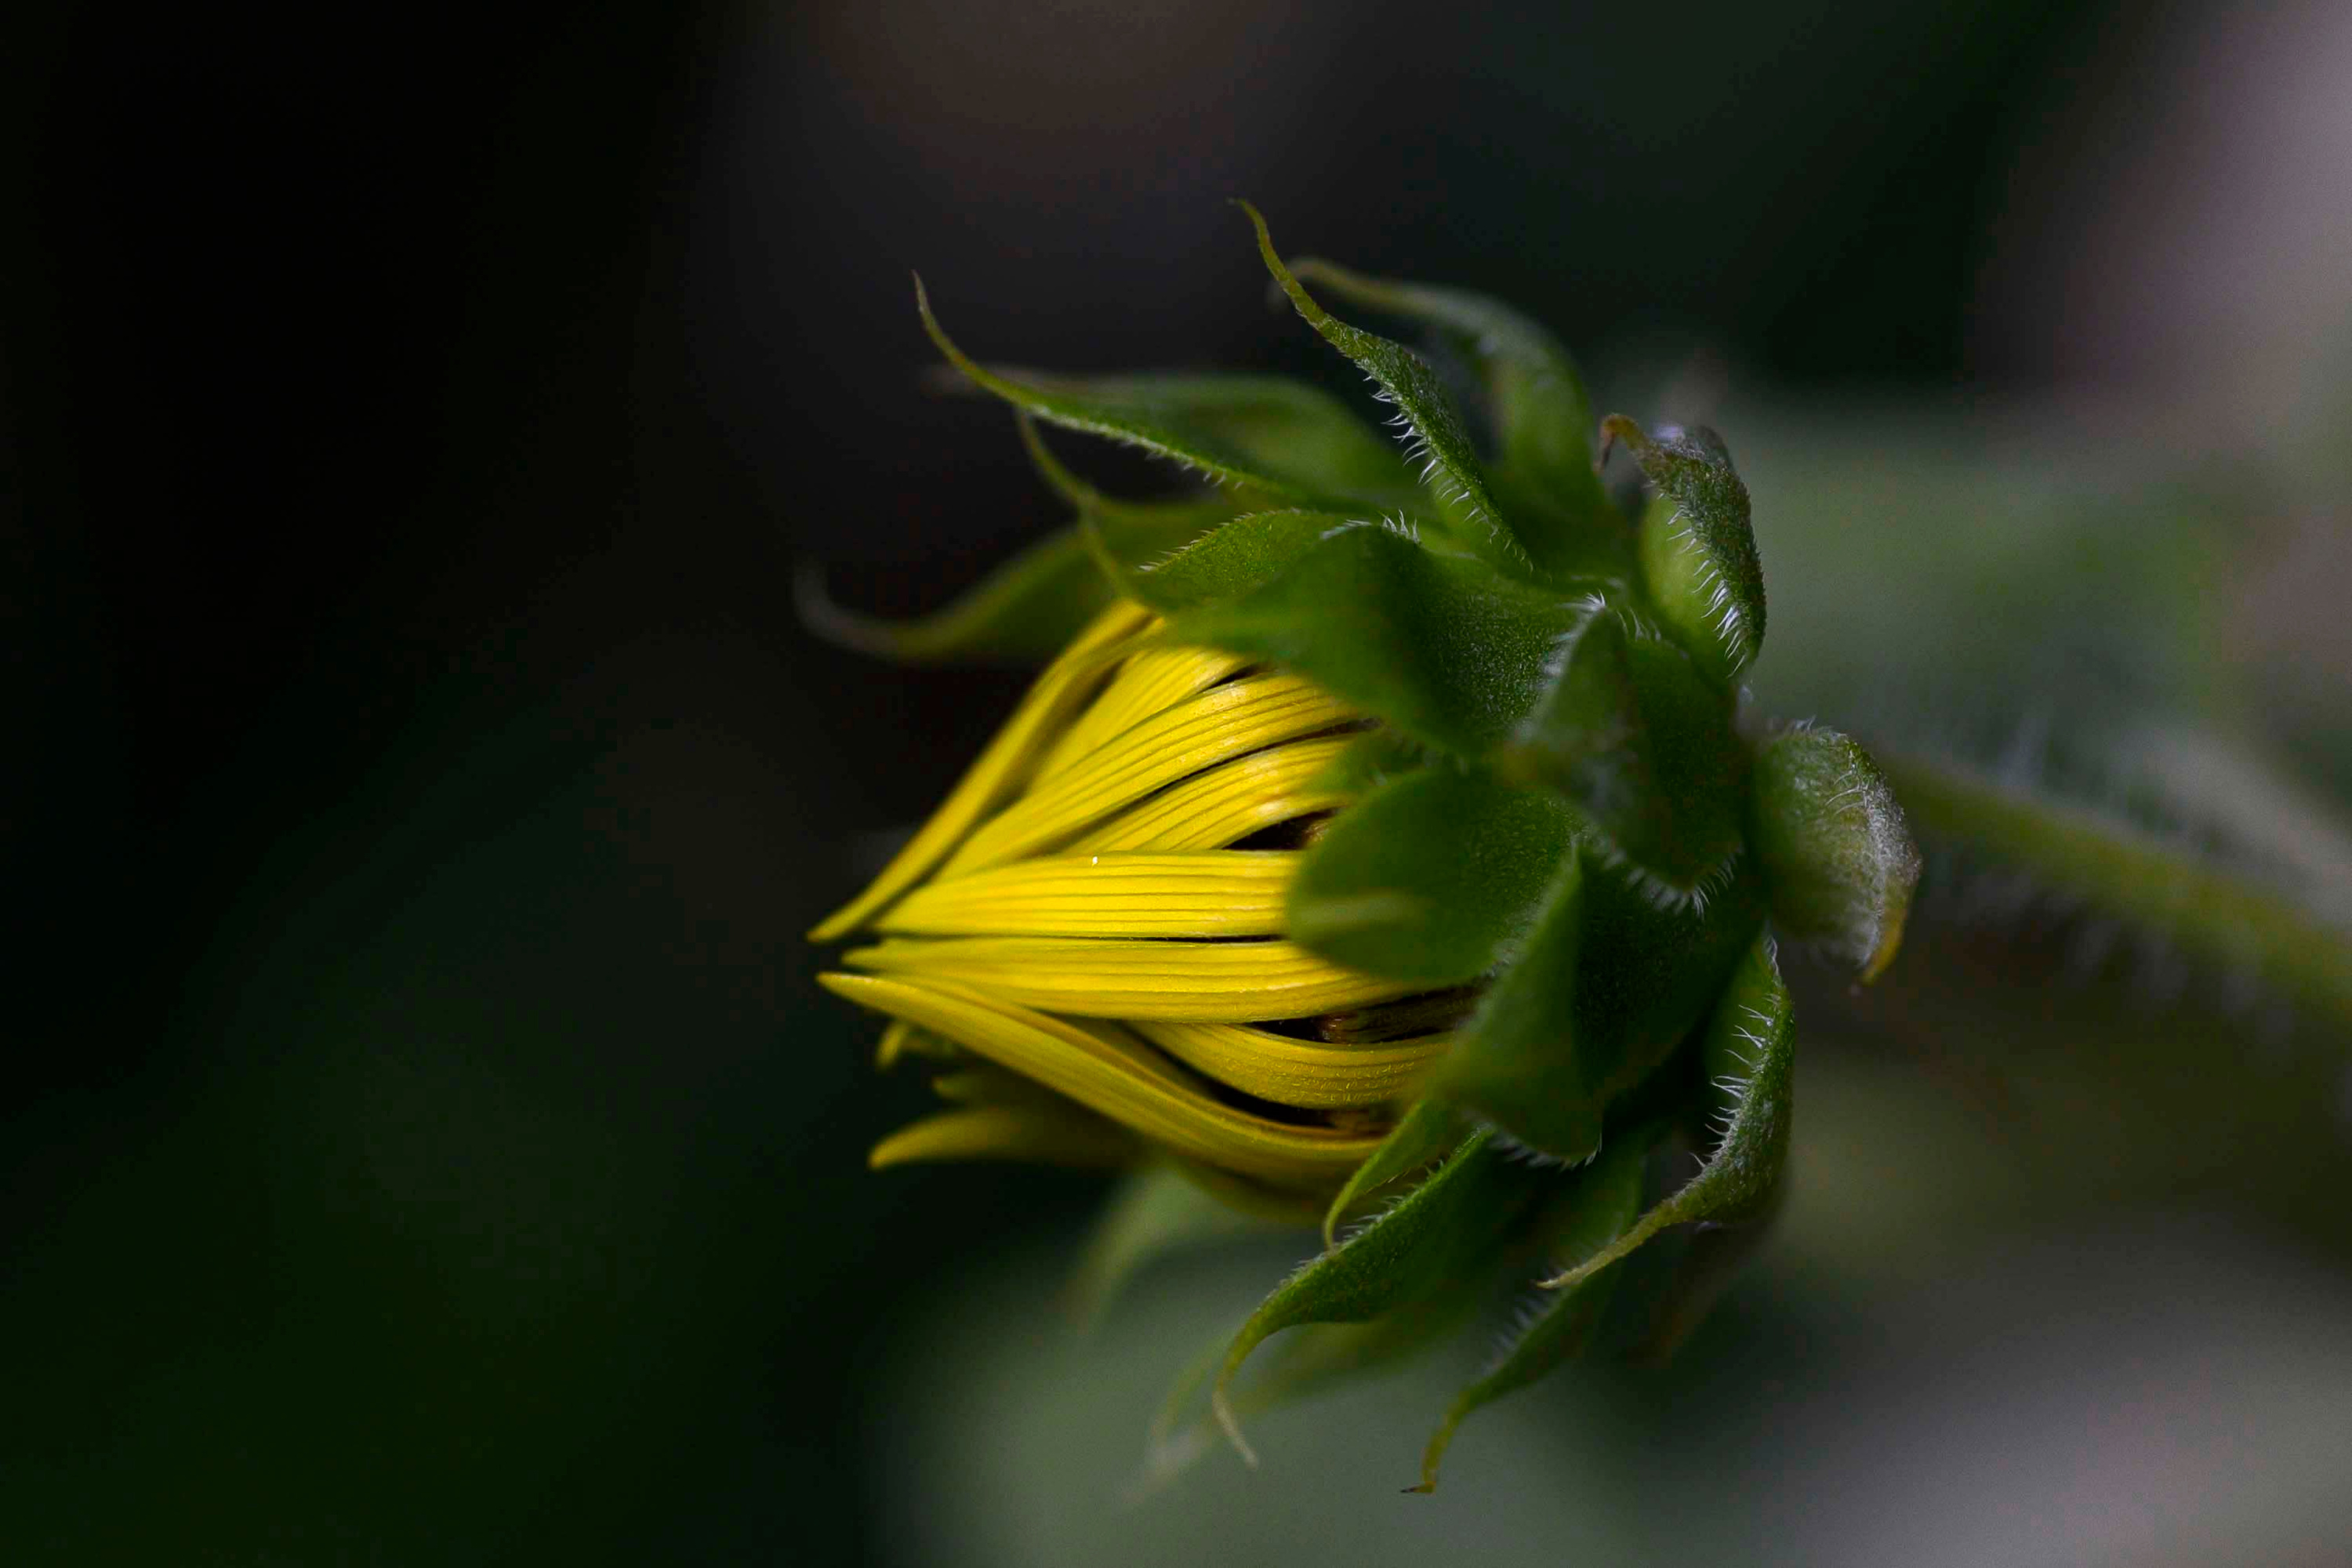 A closeup of a golden sunflower bud in the garden by Jester Dormitory